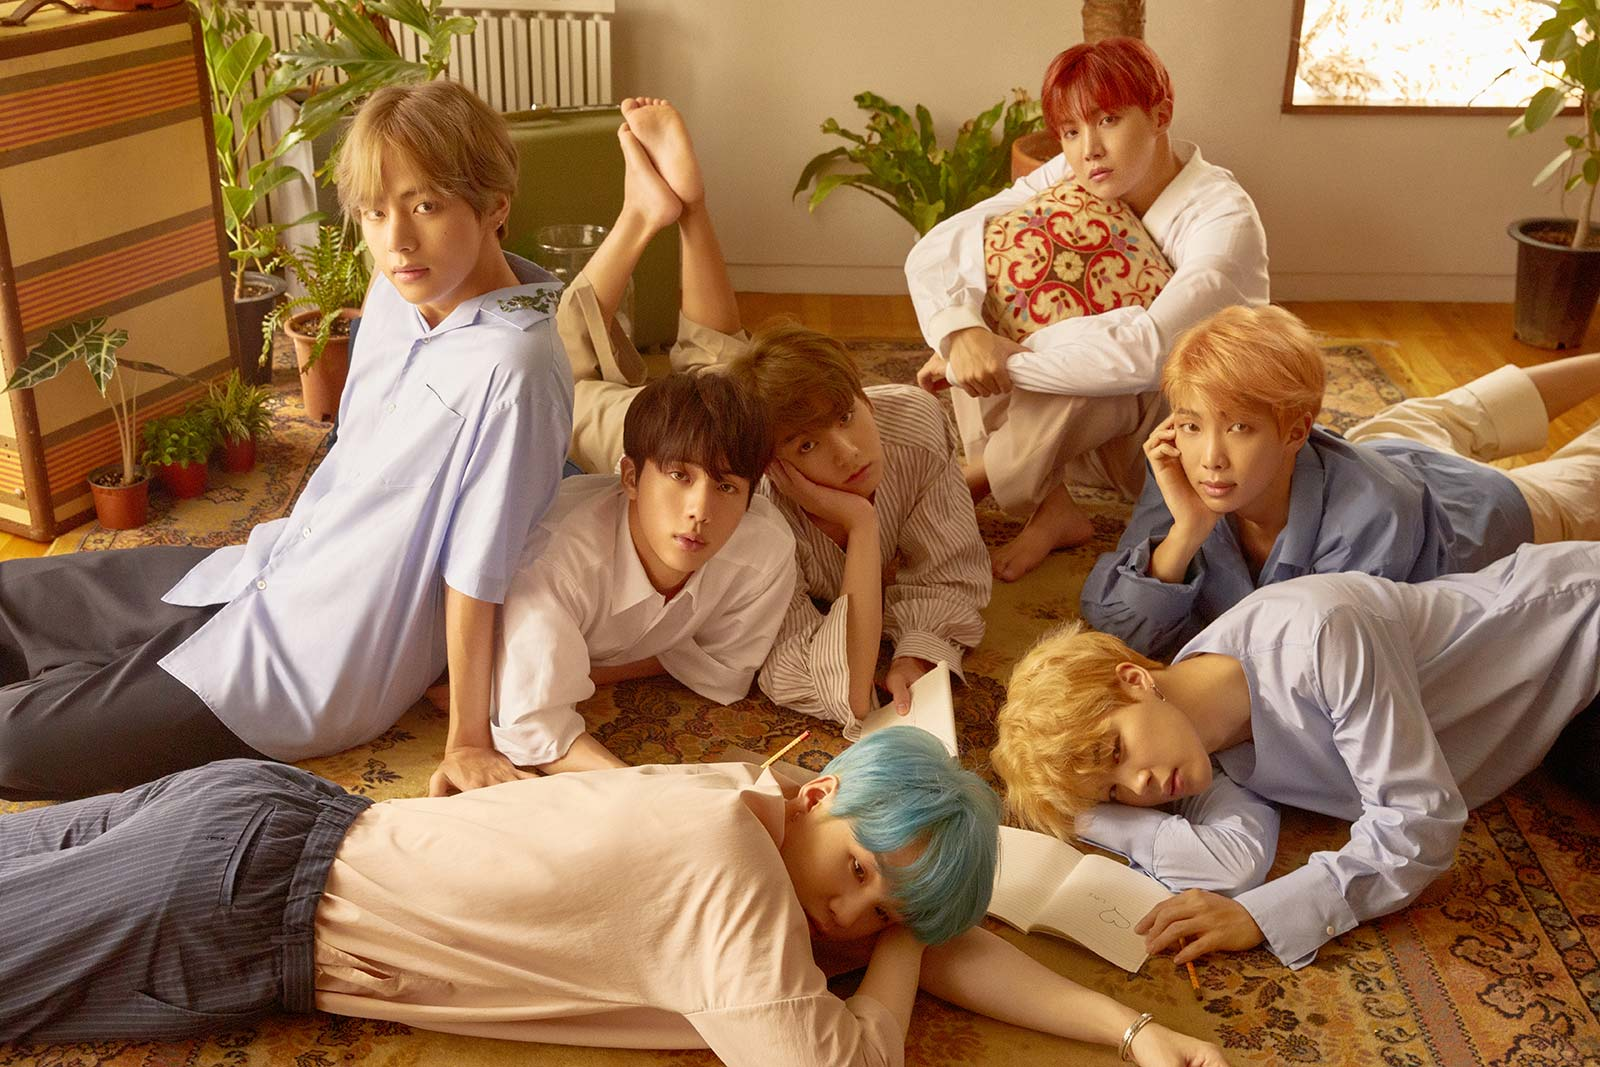 BTS targets Billboard Hot 100 with new album